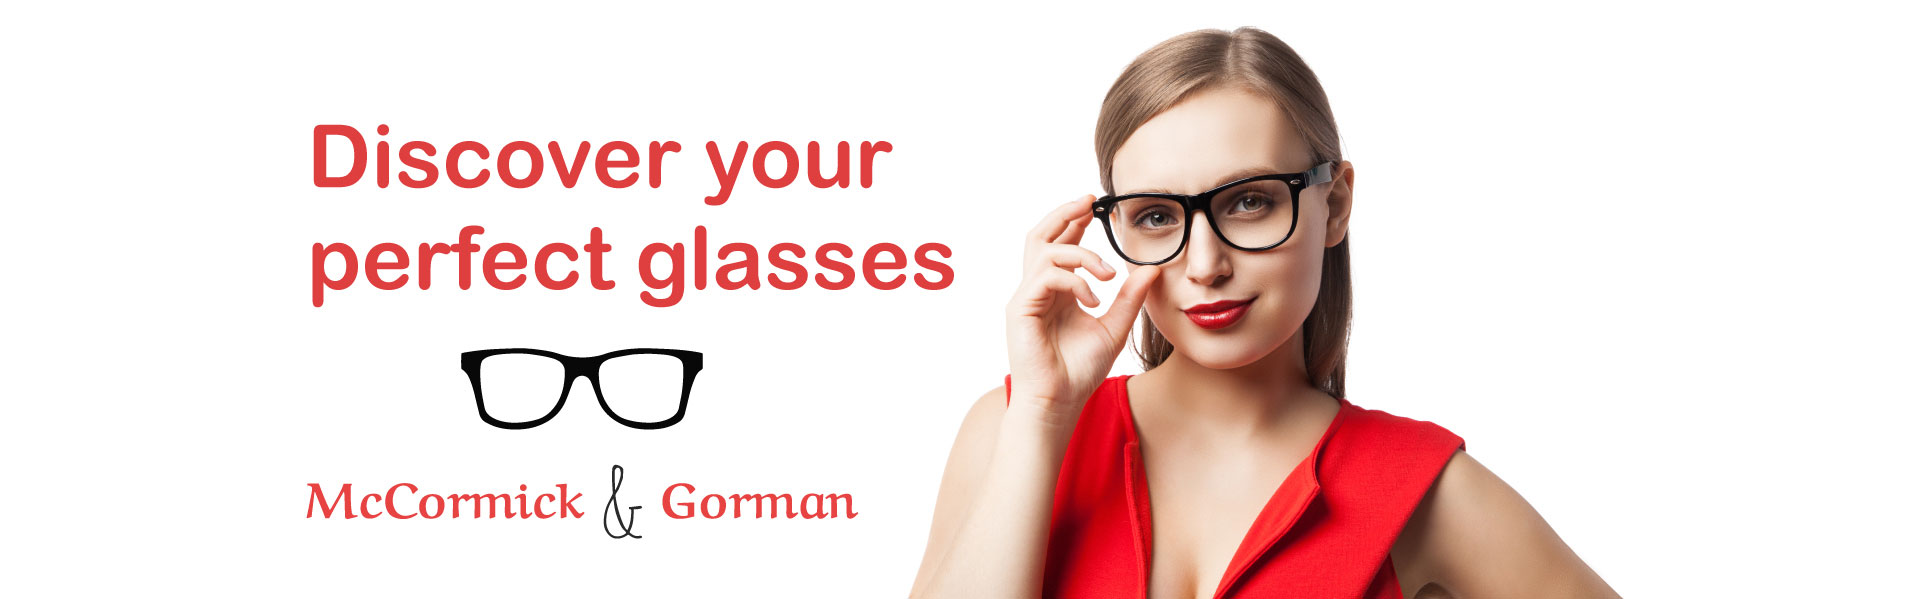 discvover your perfect glasses banner